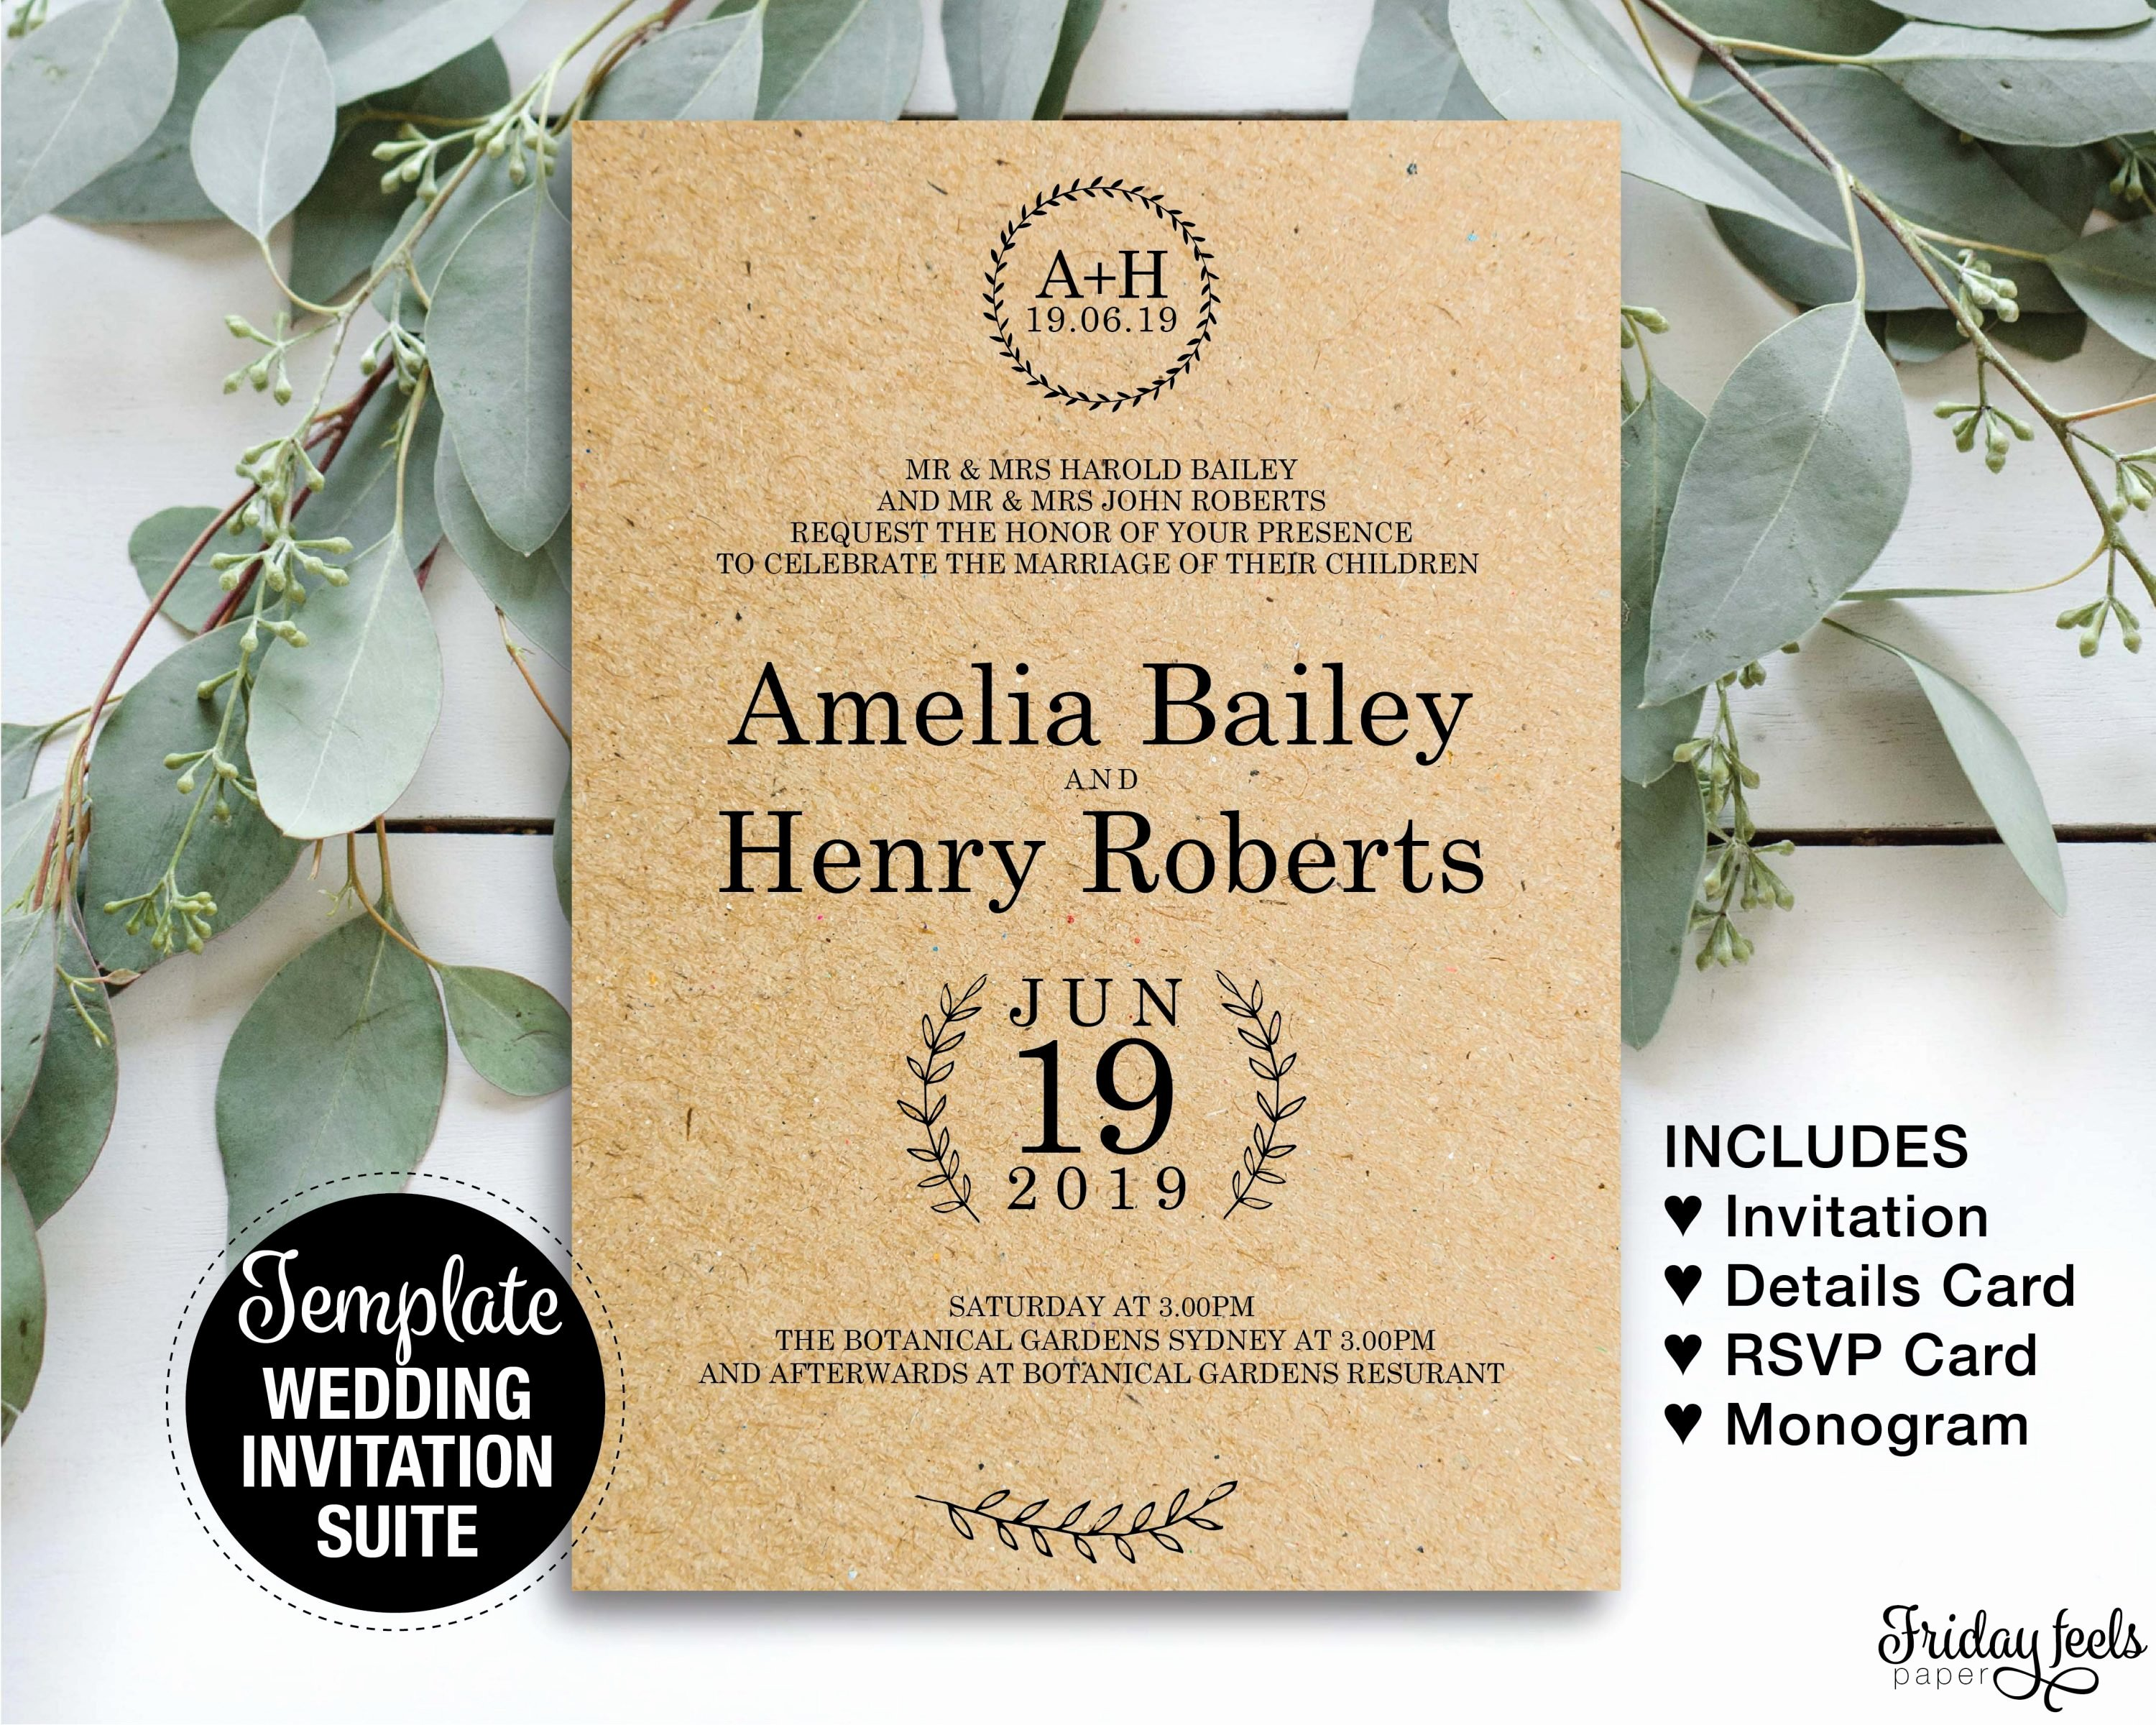 Rustic Wedding Invitation Templates Elegant Rustic Wedding Invitation Set Printable Templates Friday Feels Paper